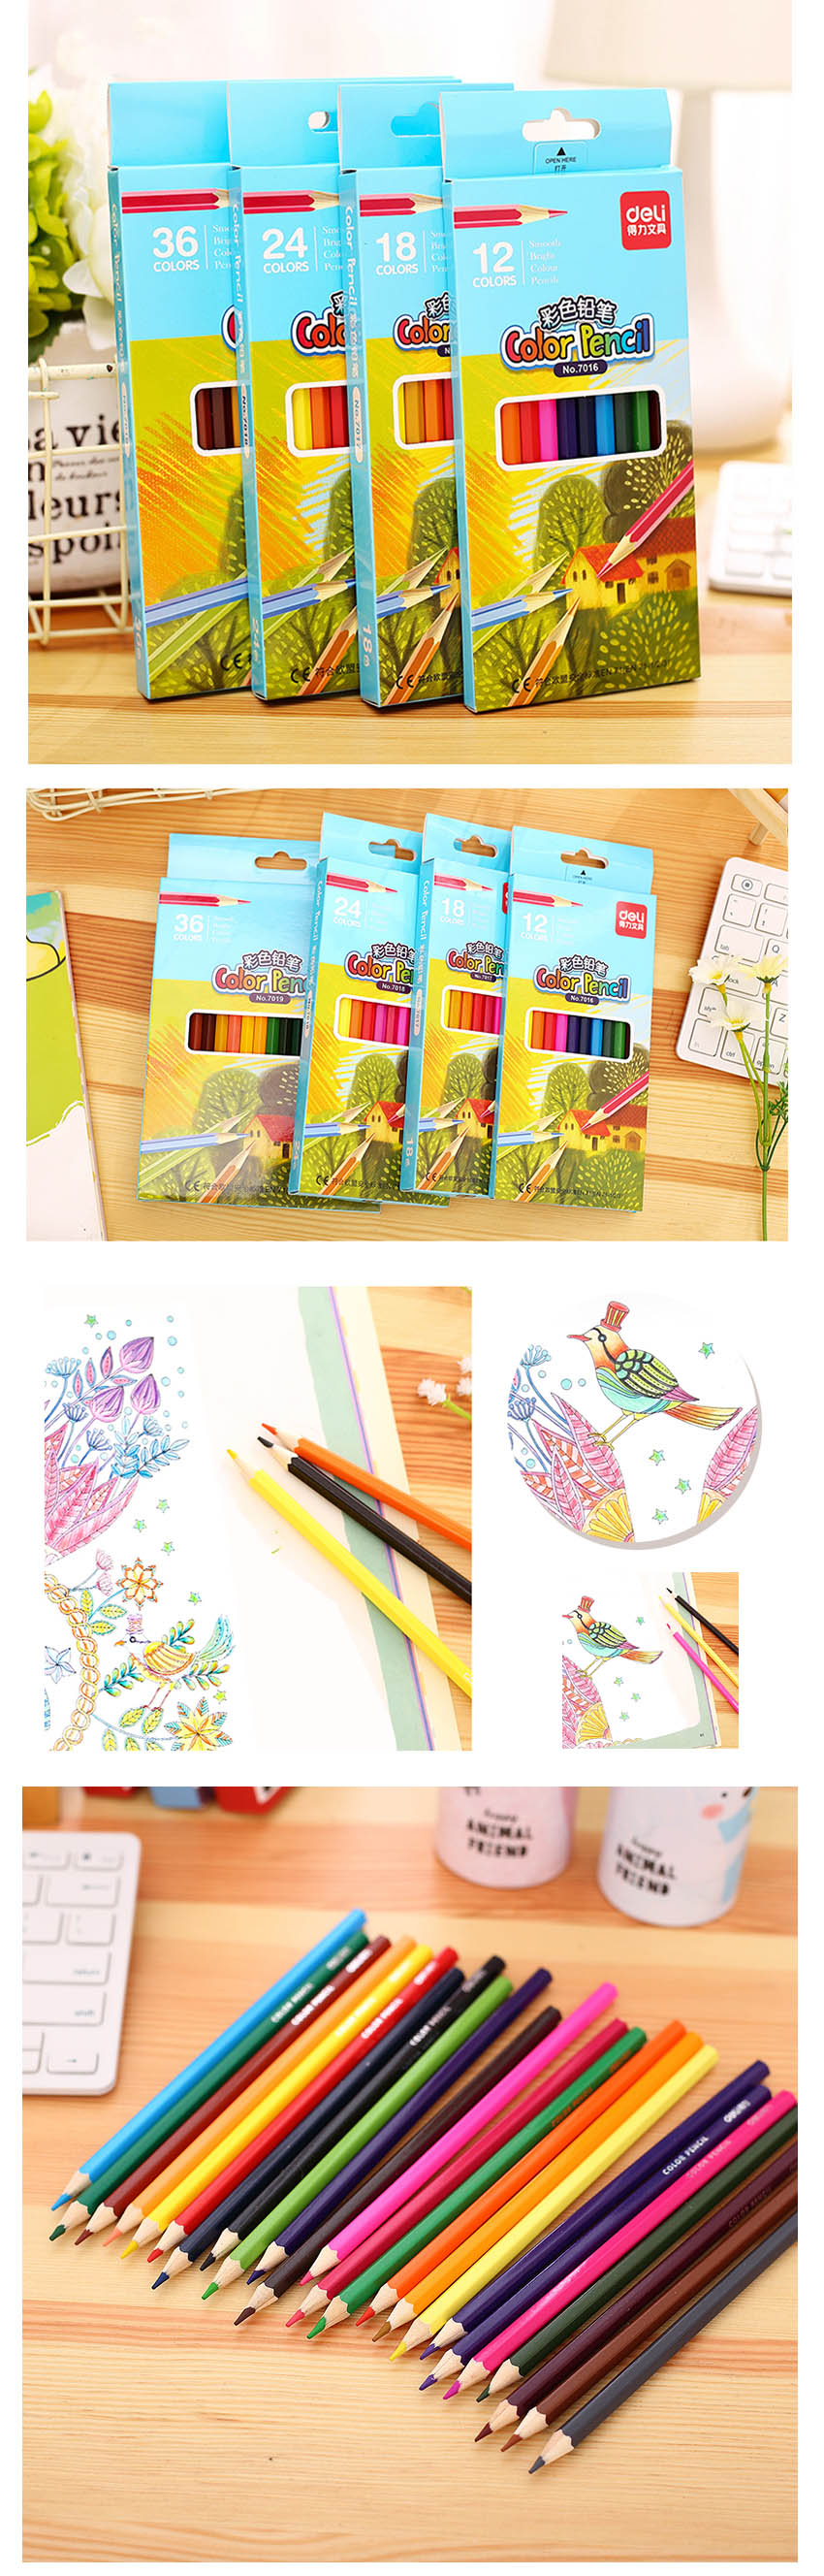 Deli 36 colors Stationery High quality Colored Pencil Drawing Painting Candy Colors Pencils For School Non-toxic For student 2